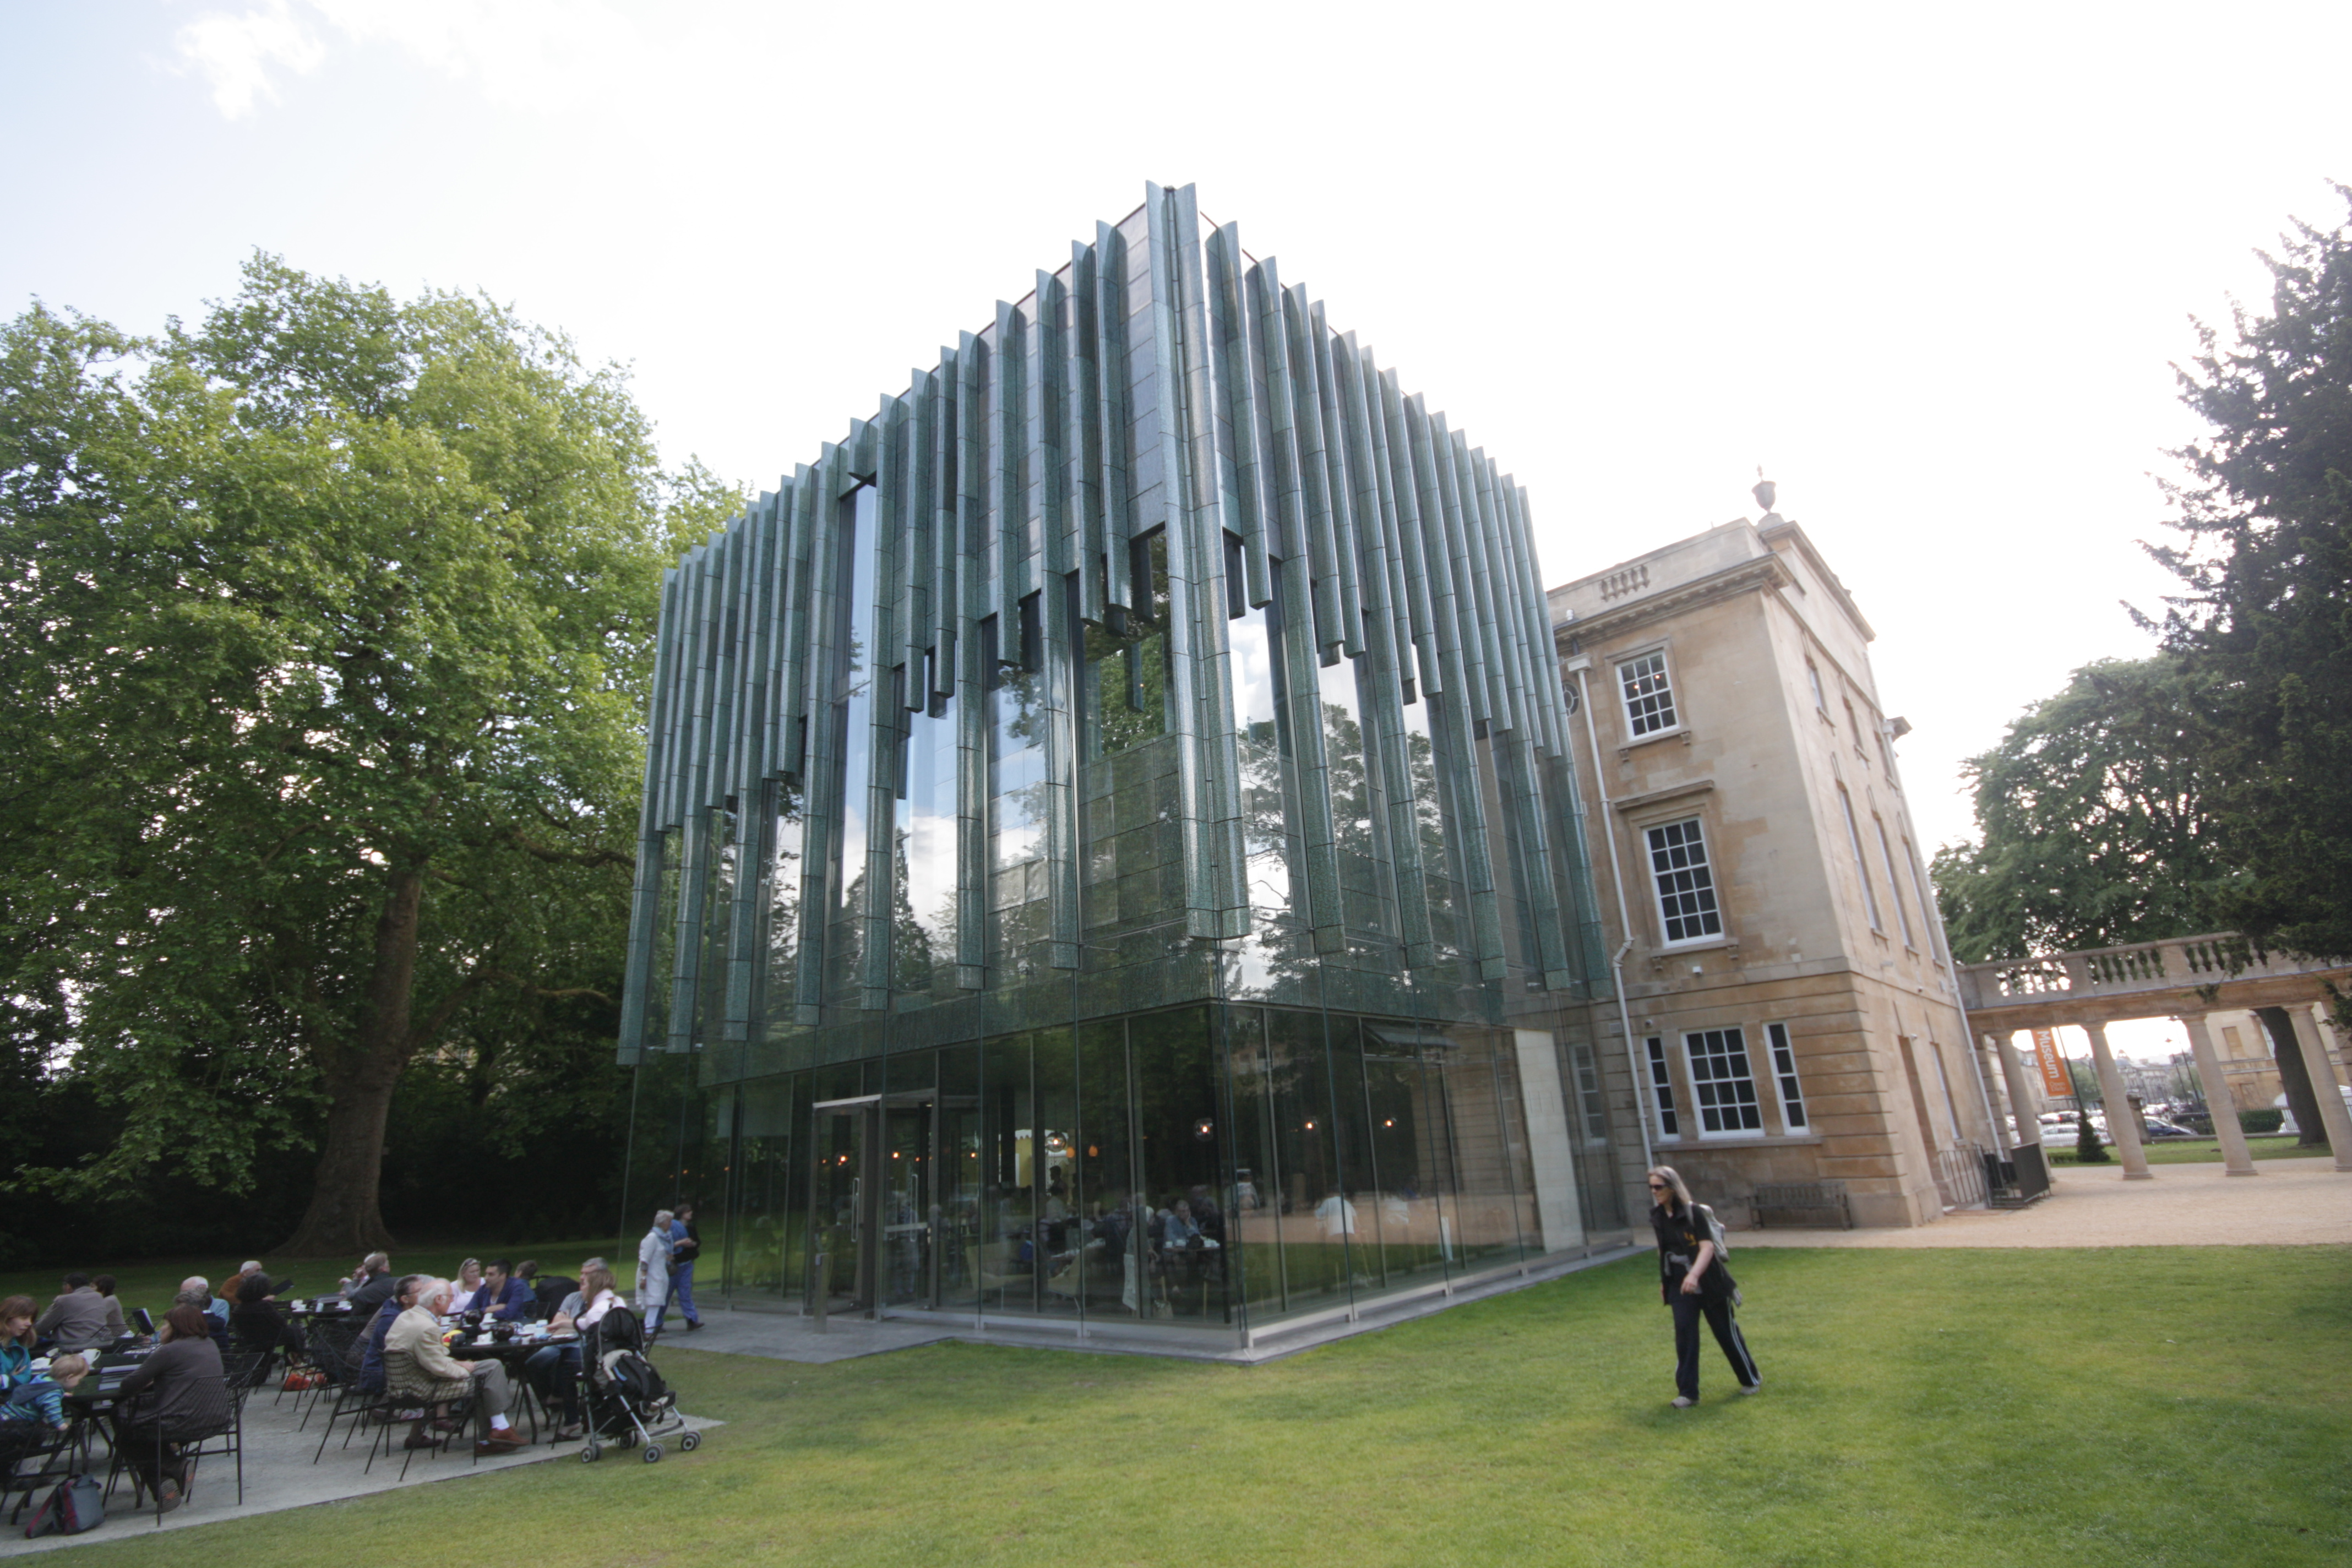 Modern Architecture City holburne art museum shows that modern architecture is possible in